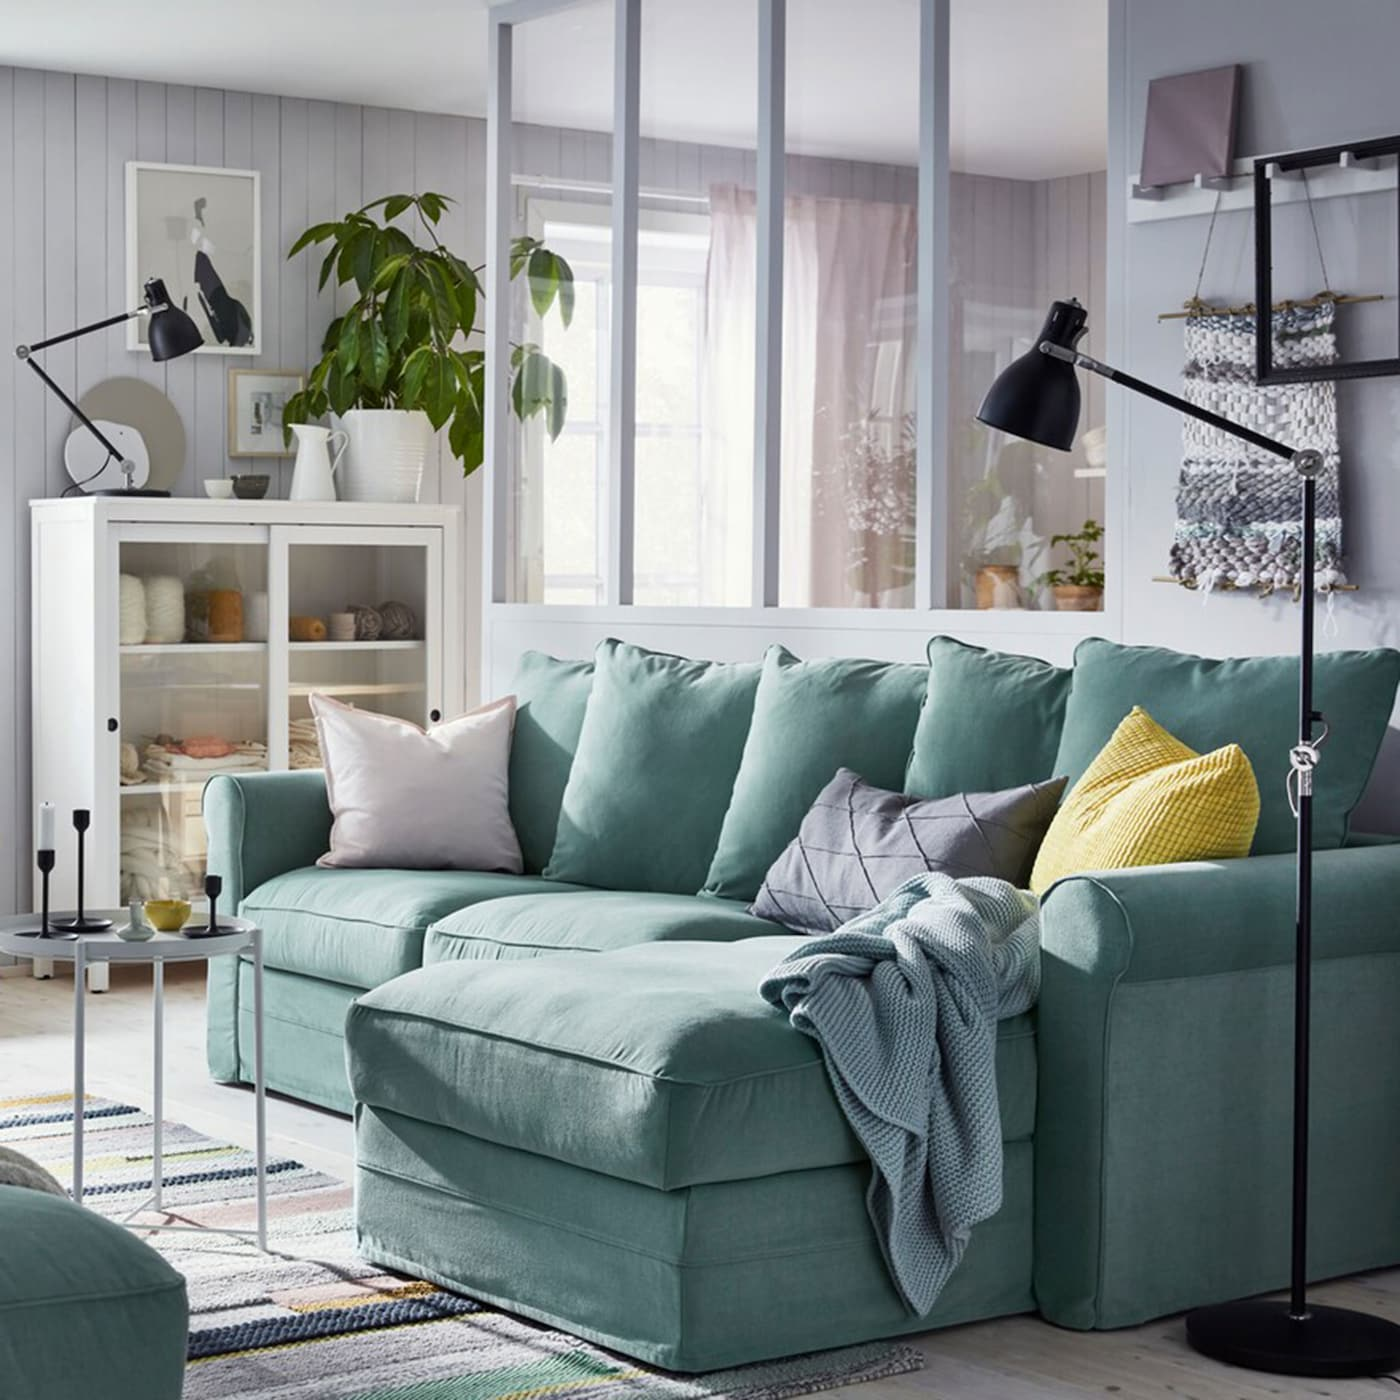 Ikea Living Room Photos serenity in a small living room - ikea